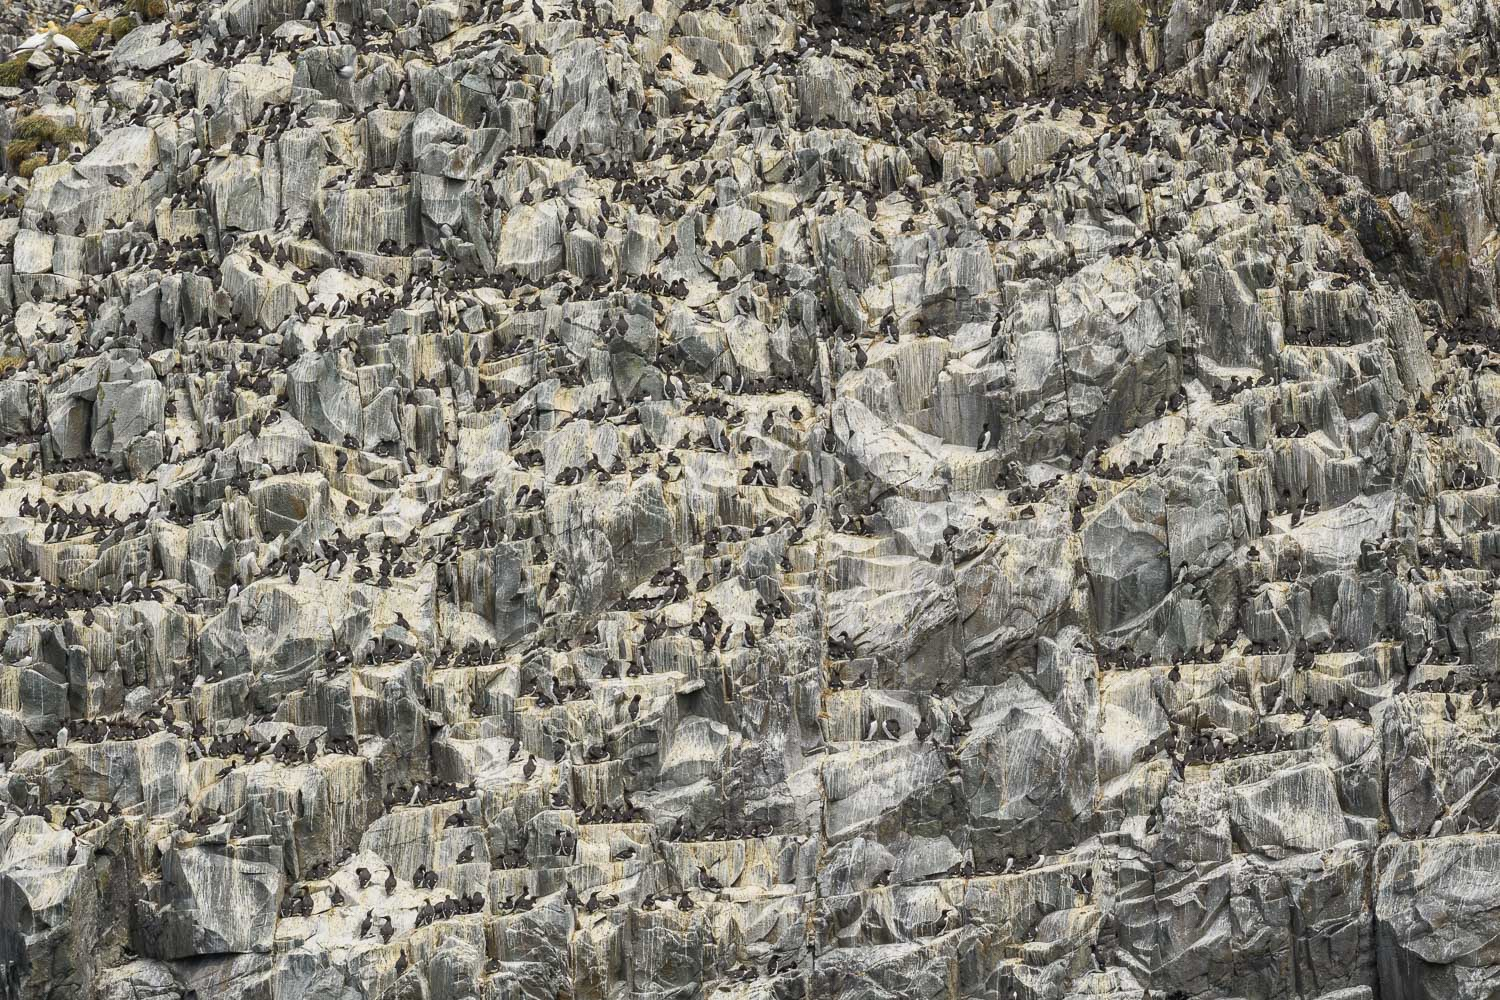 Guillemots Nesting On Cliffs